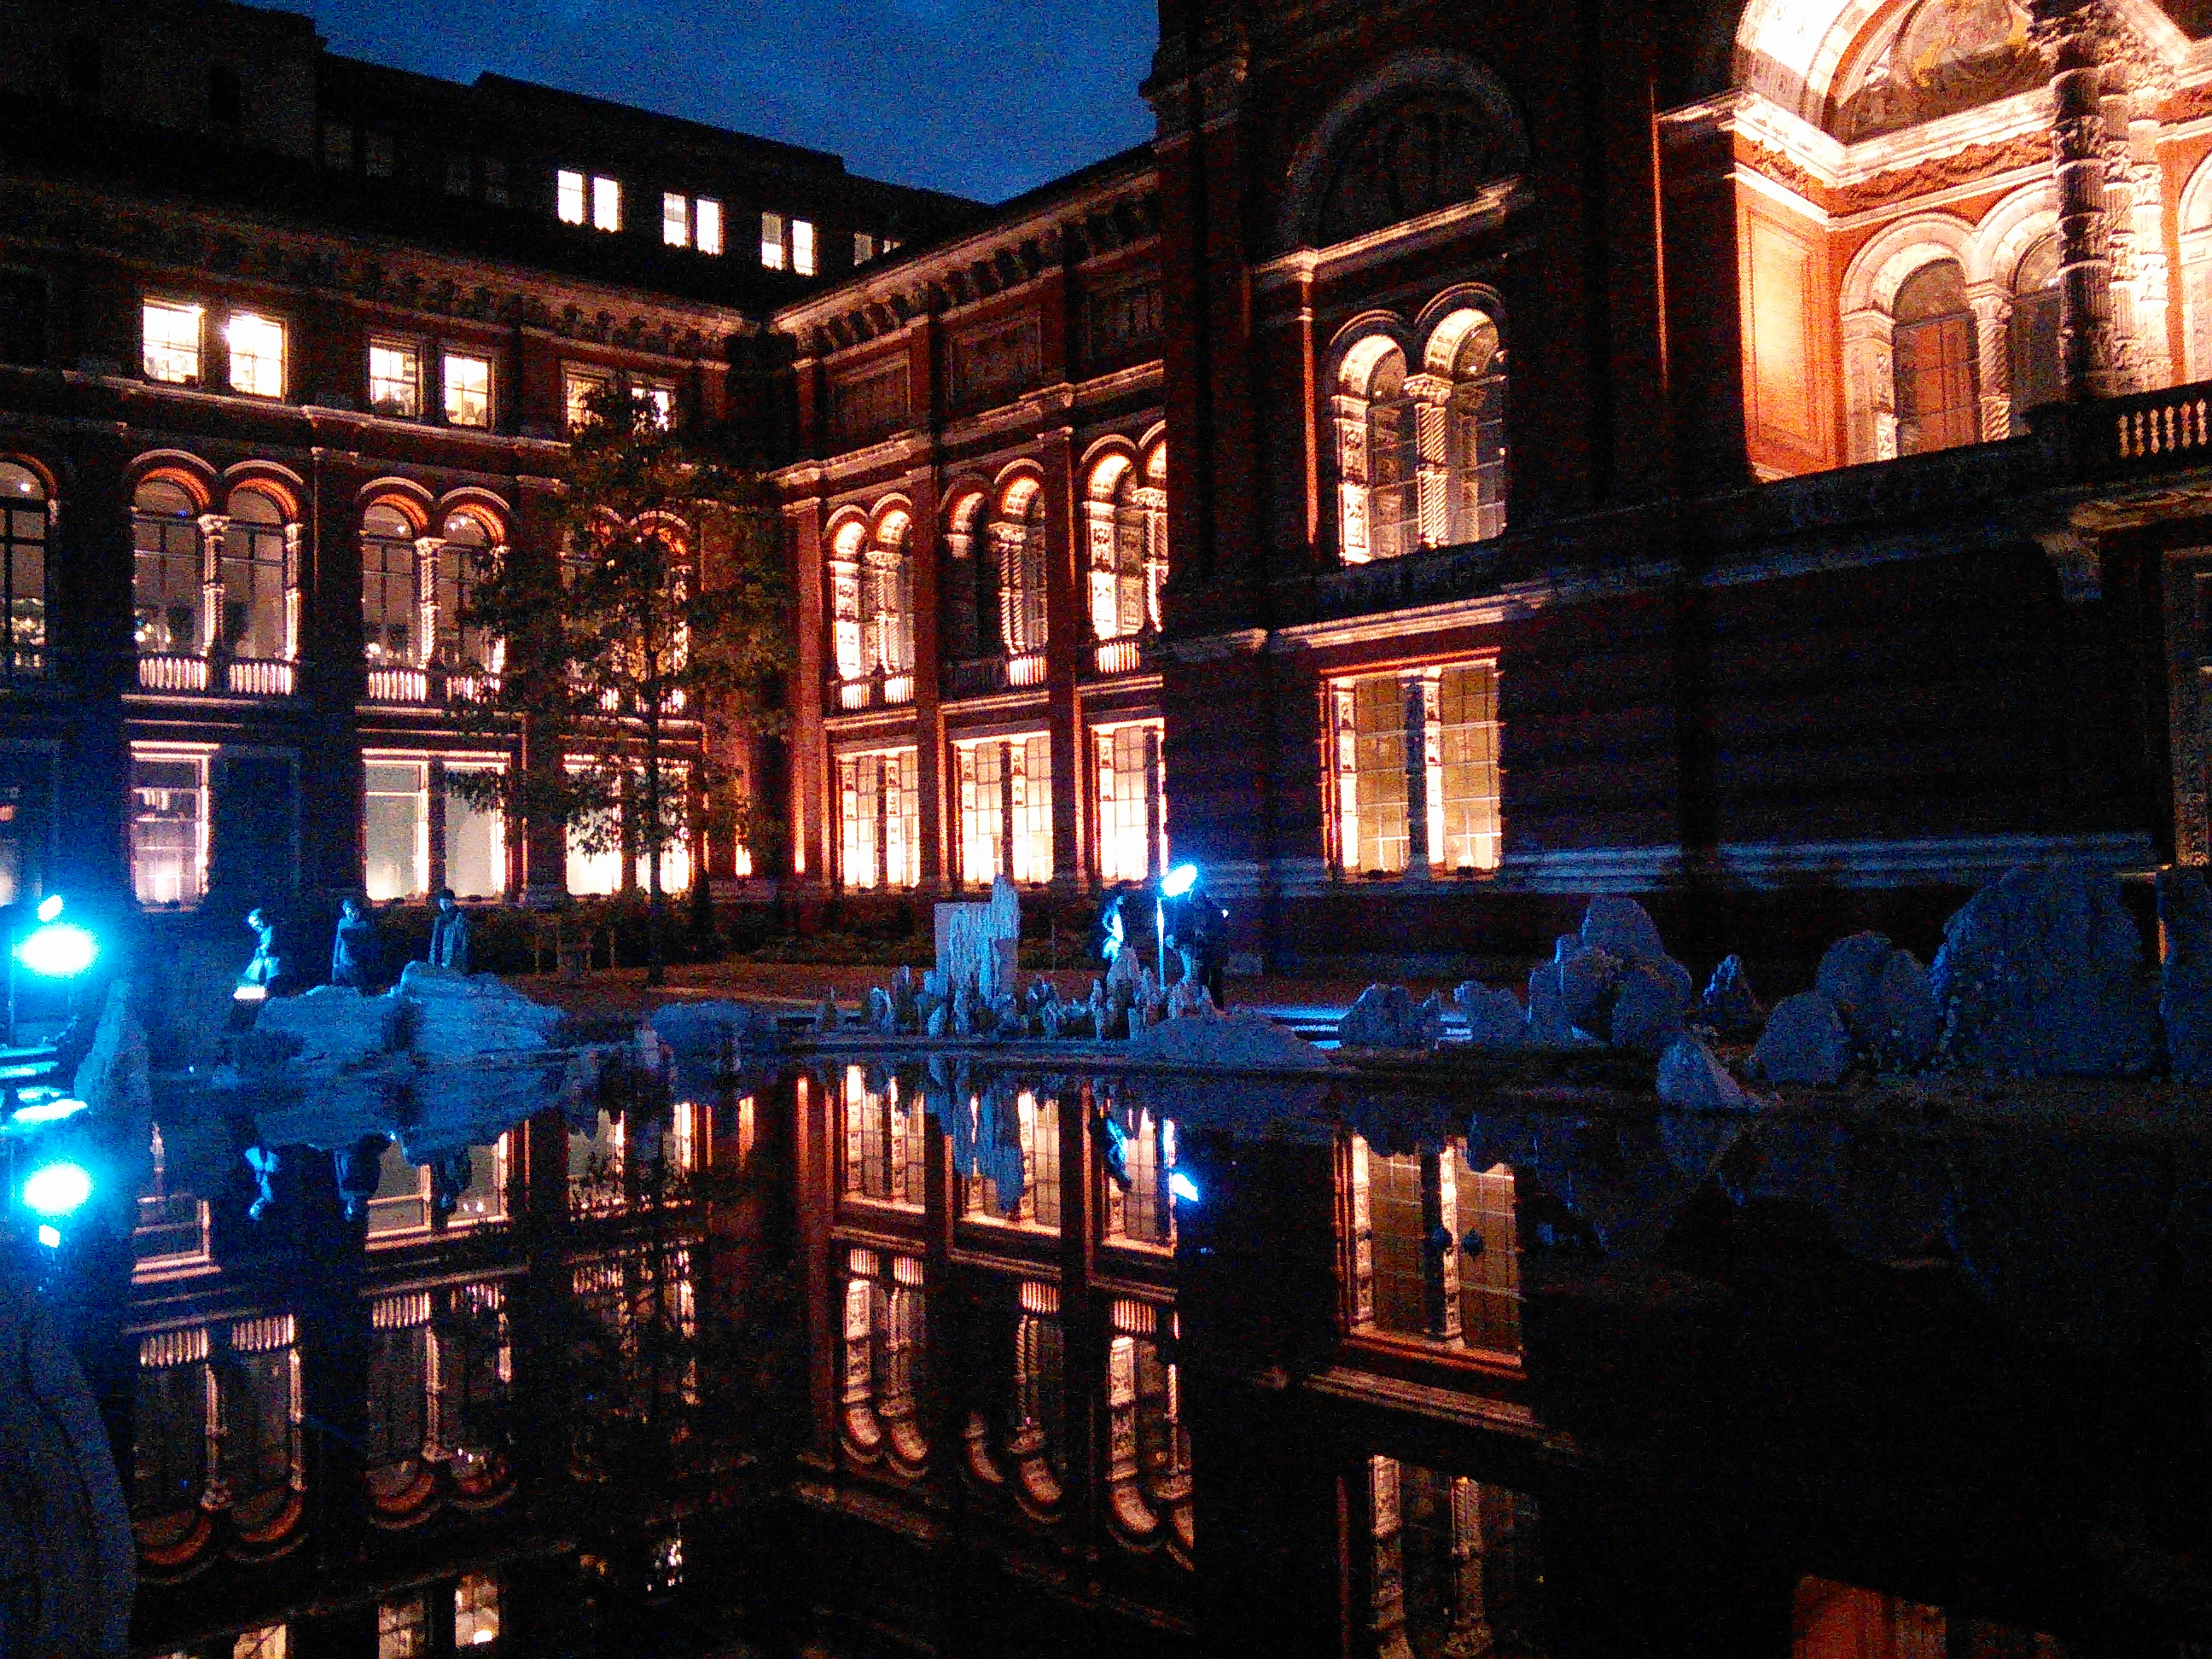 V&A Courtyard, London